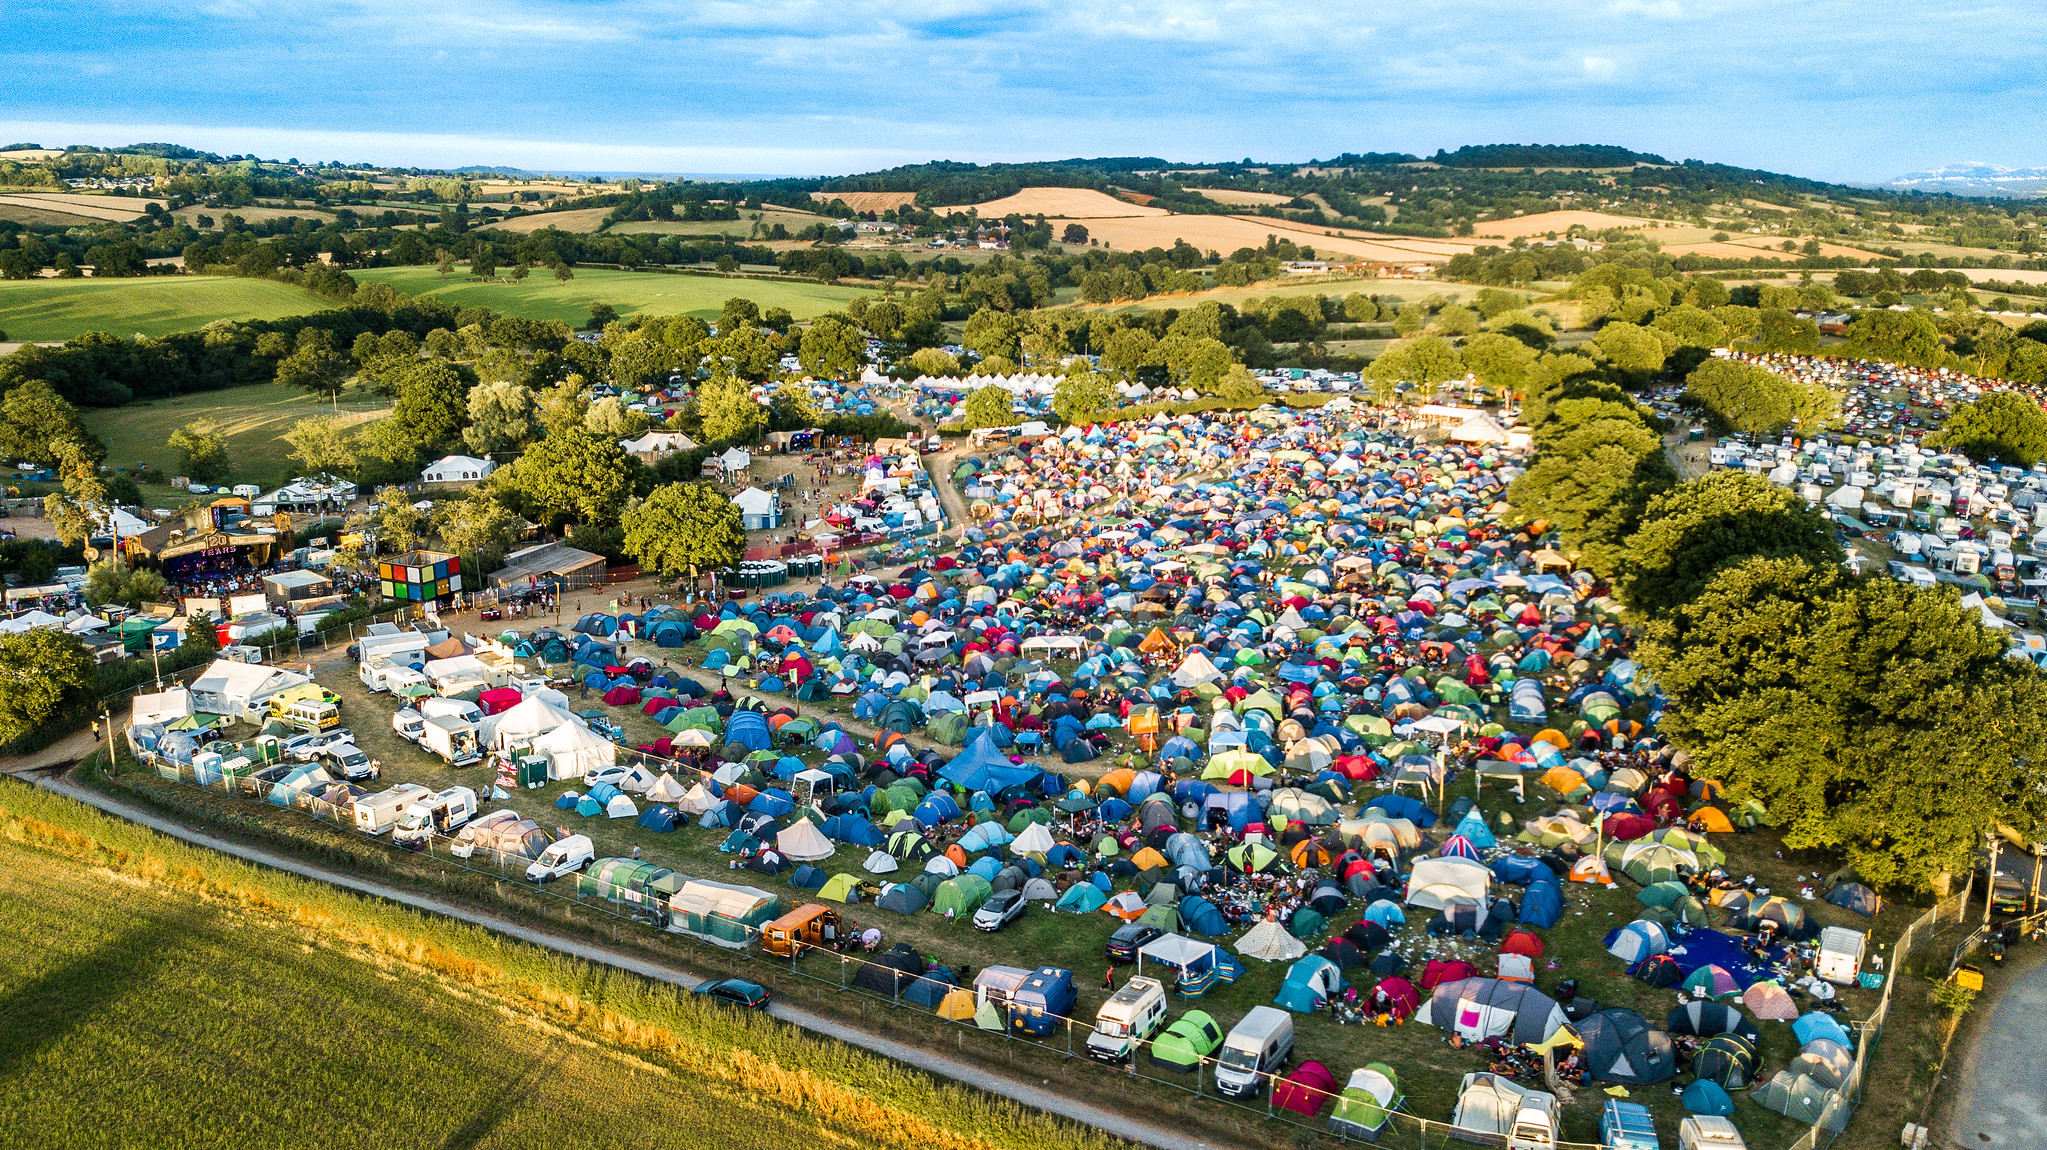 An update on Nozstock 2021…